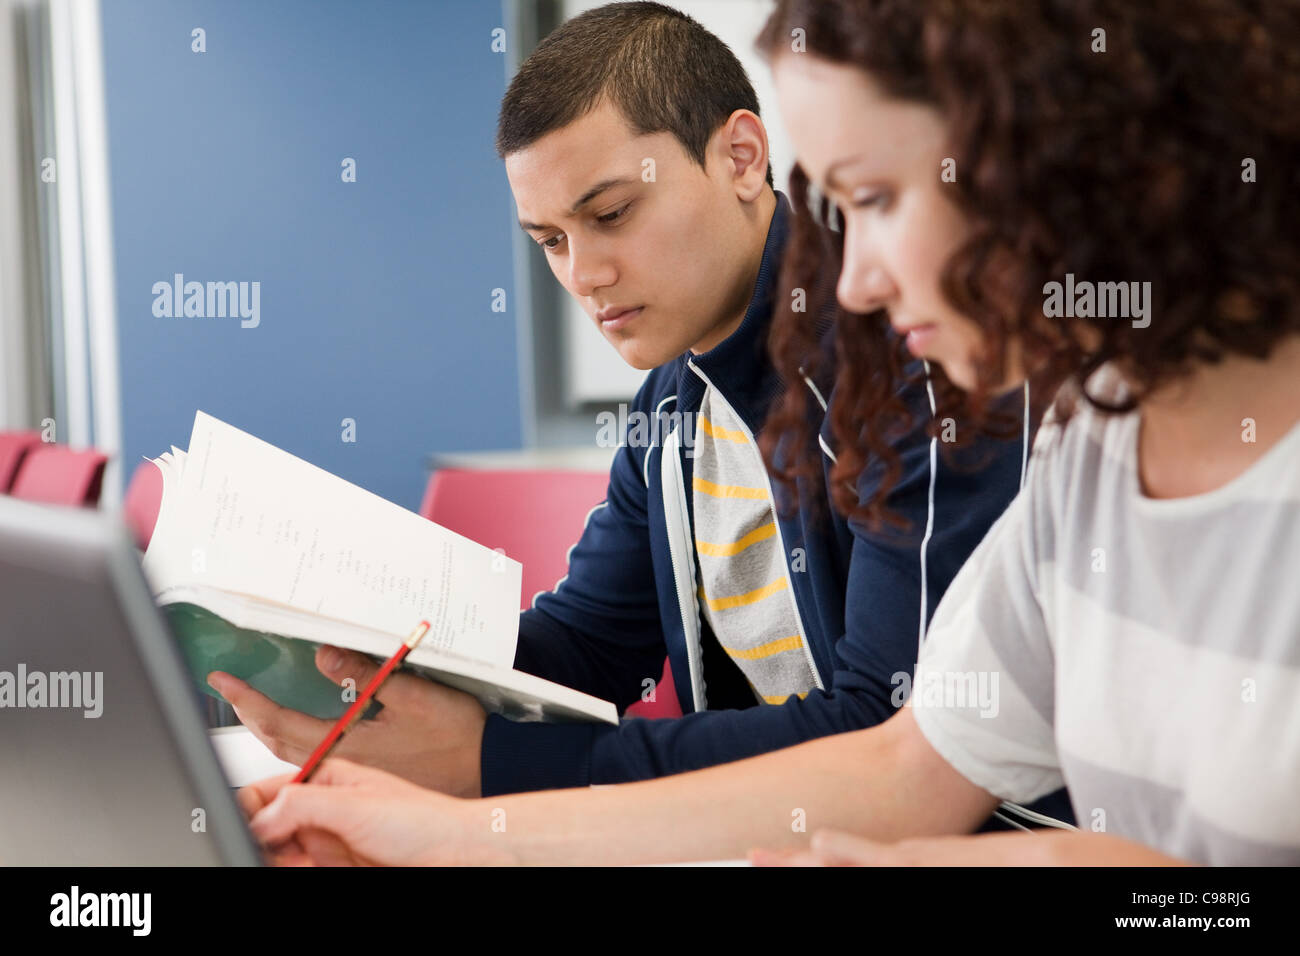 University student studying textbook class - Stock Image